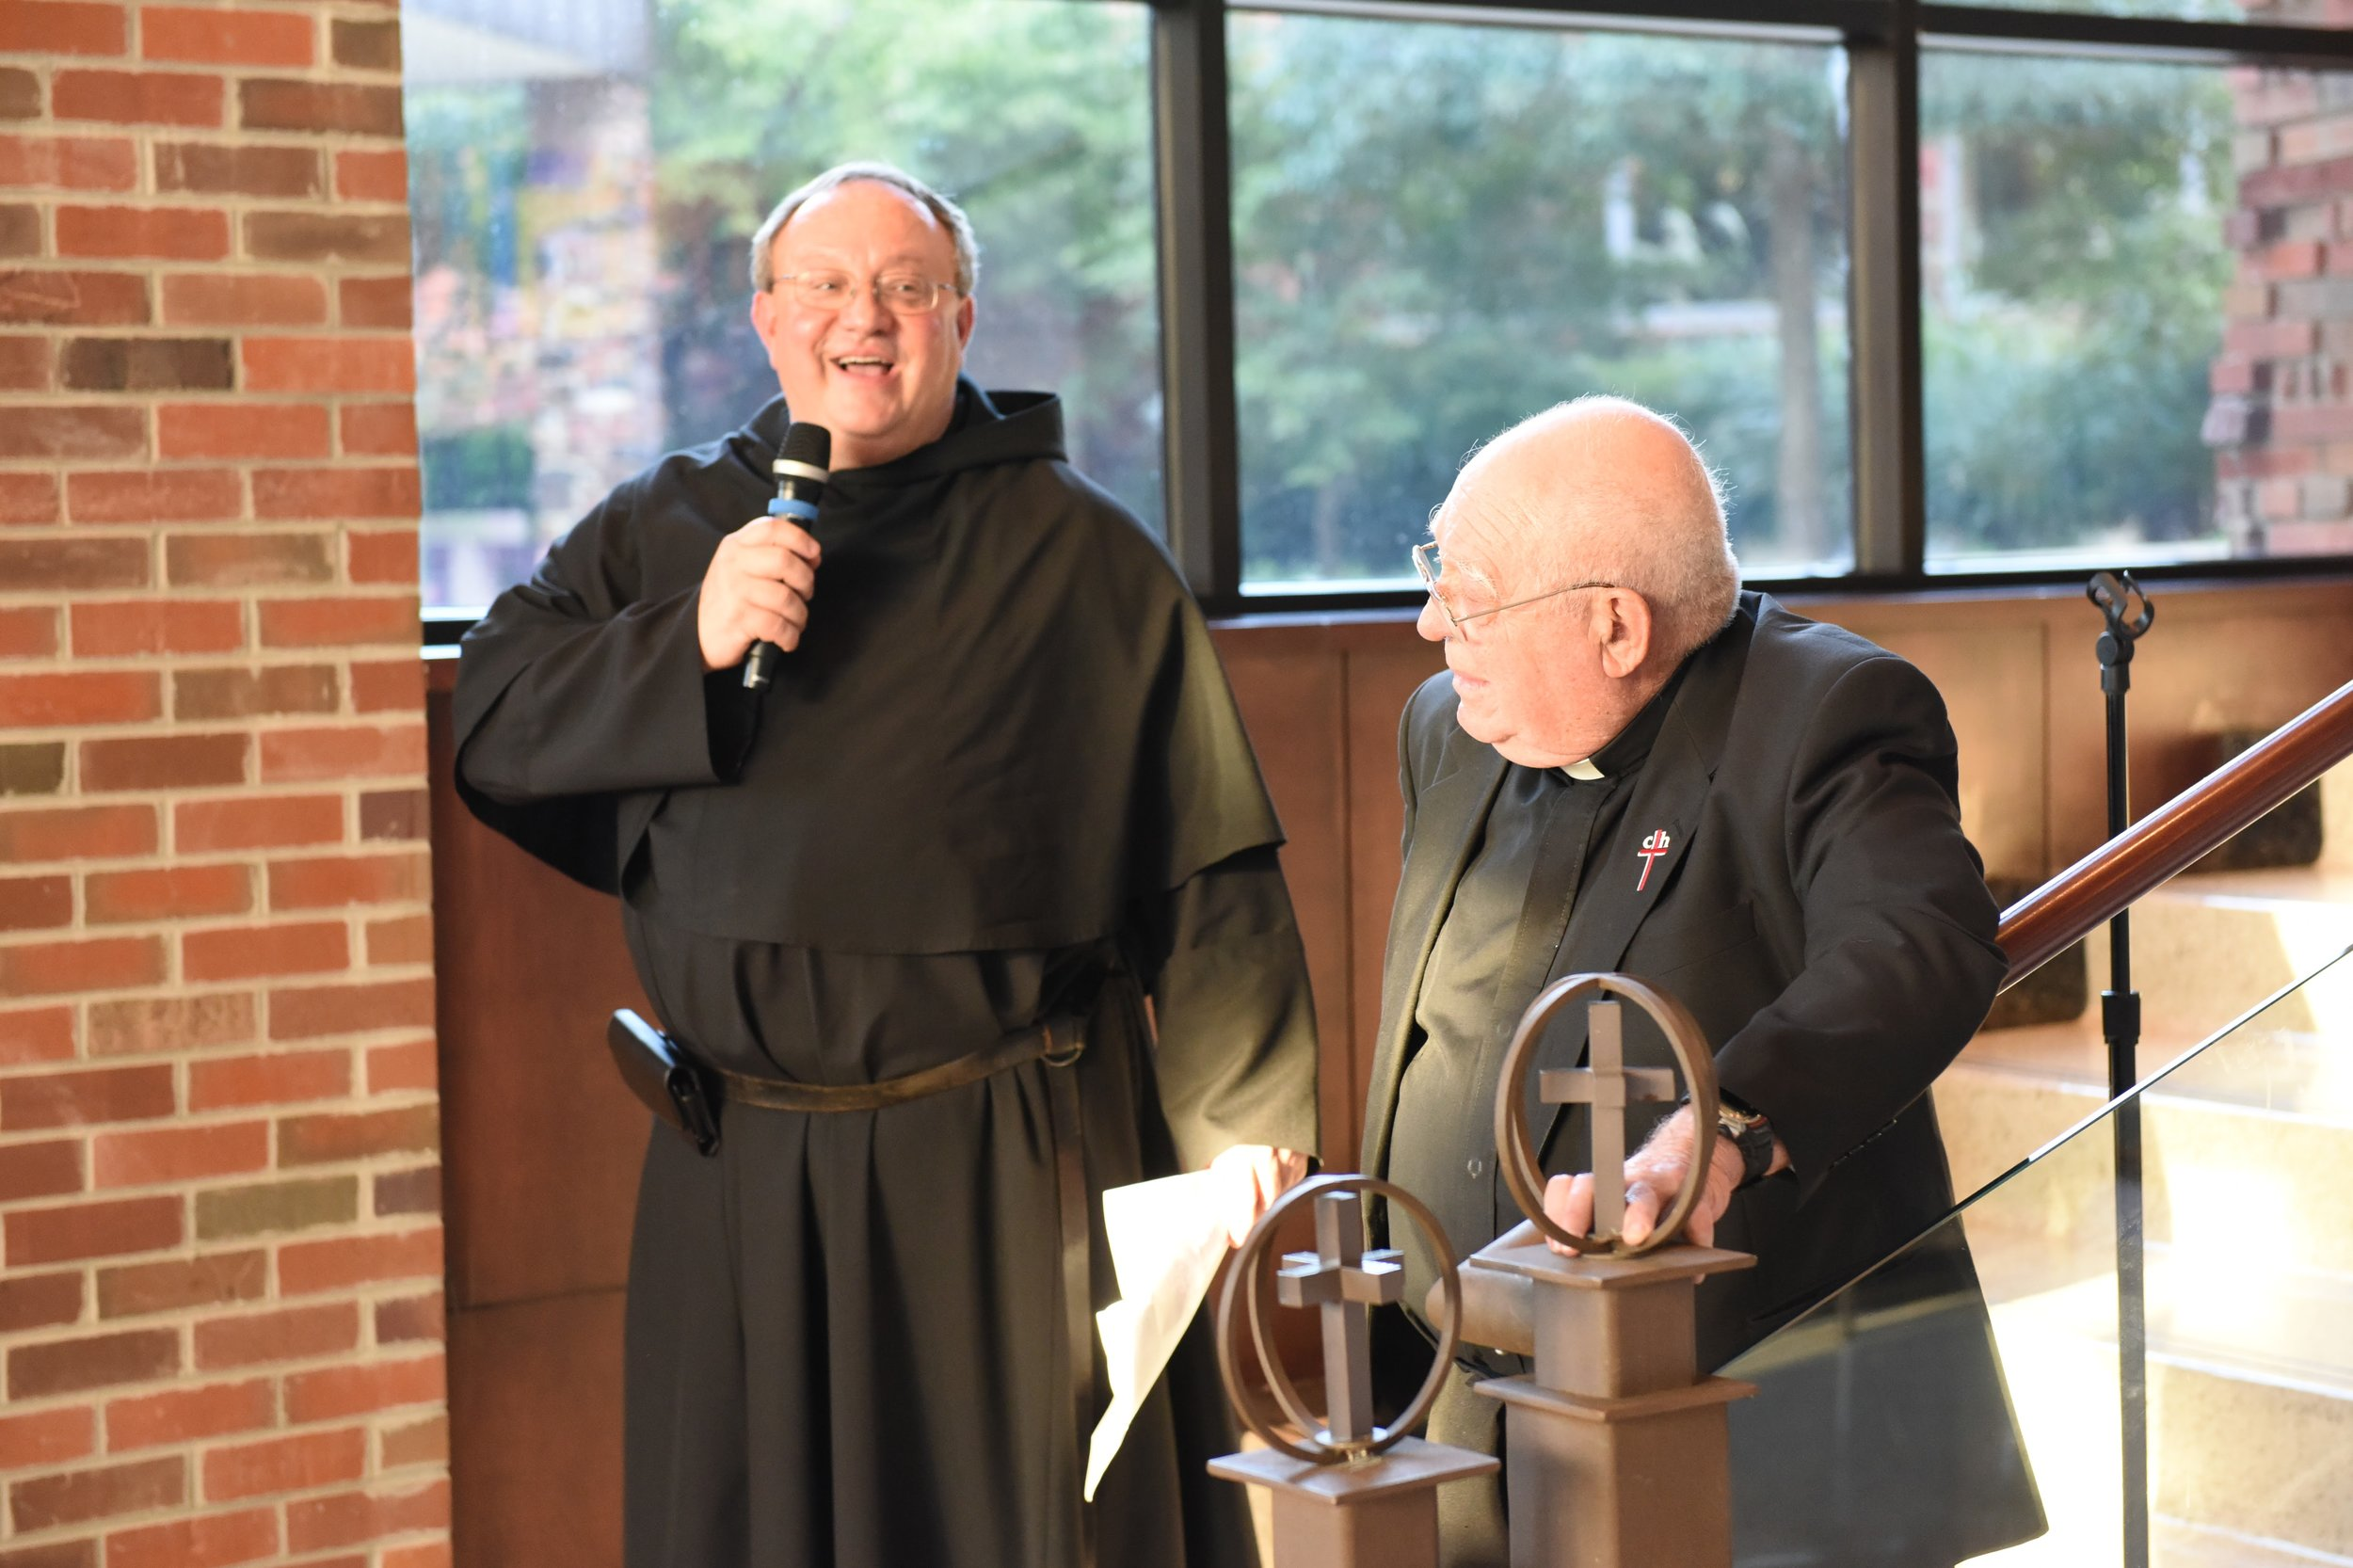 Fr. Bernie Scianna, OSA, speaking with Fr. Bill Perez, OSA, at the 2016 Tulsa Reception